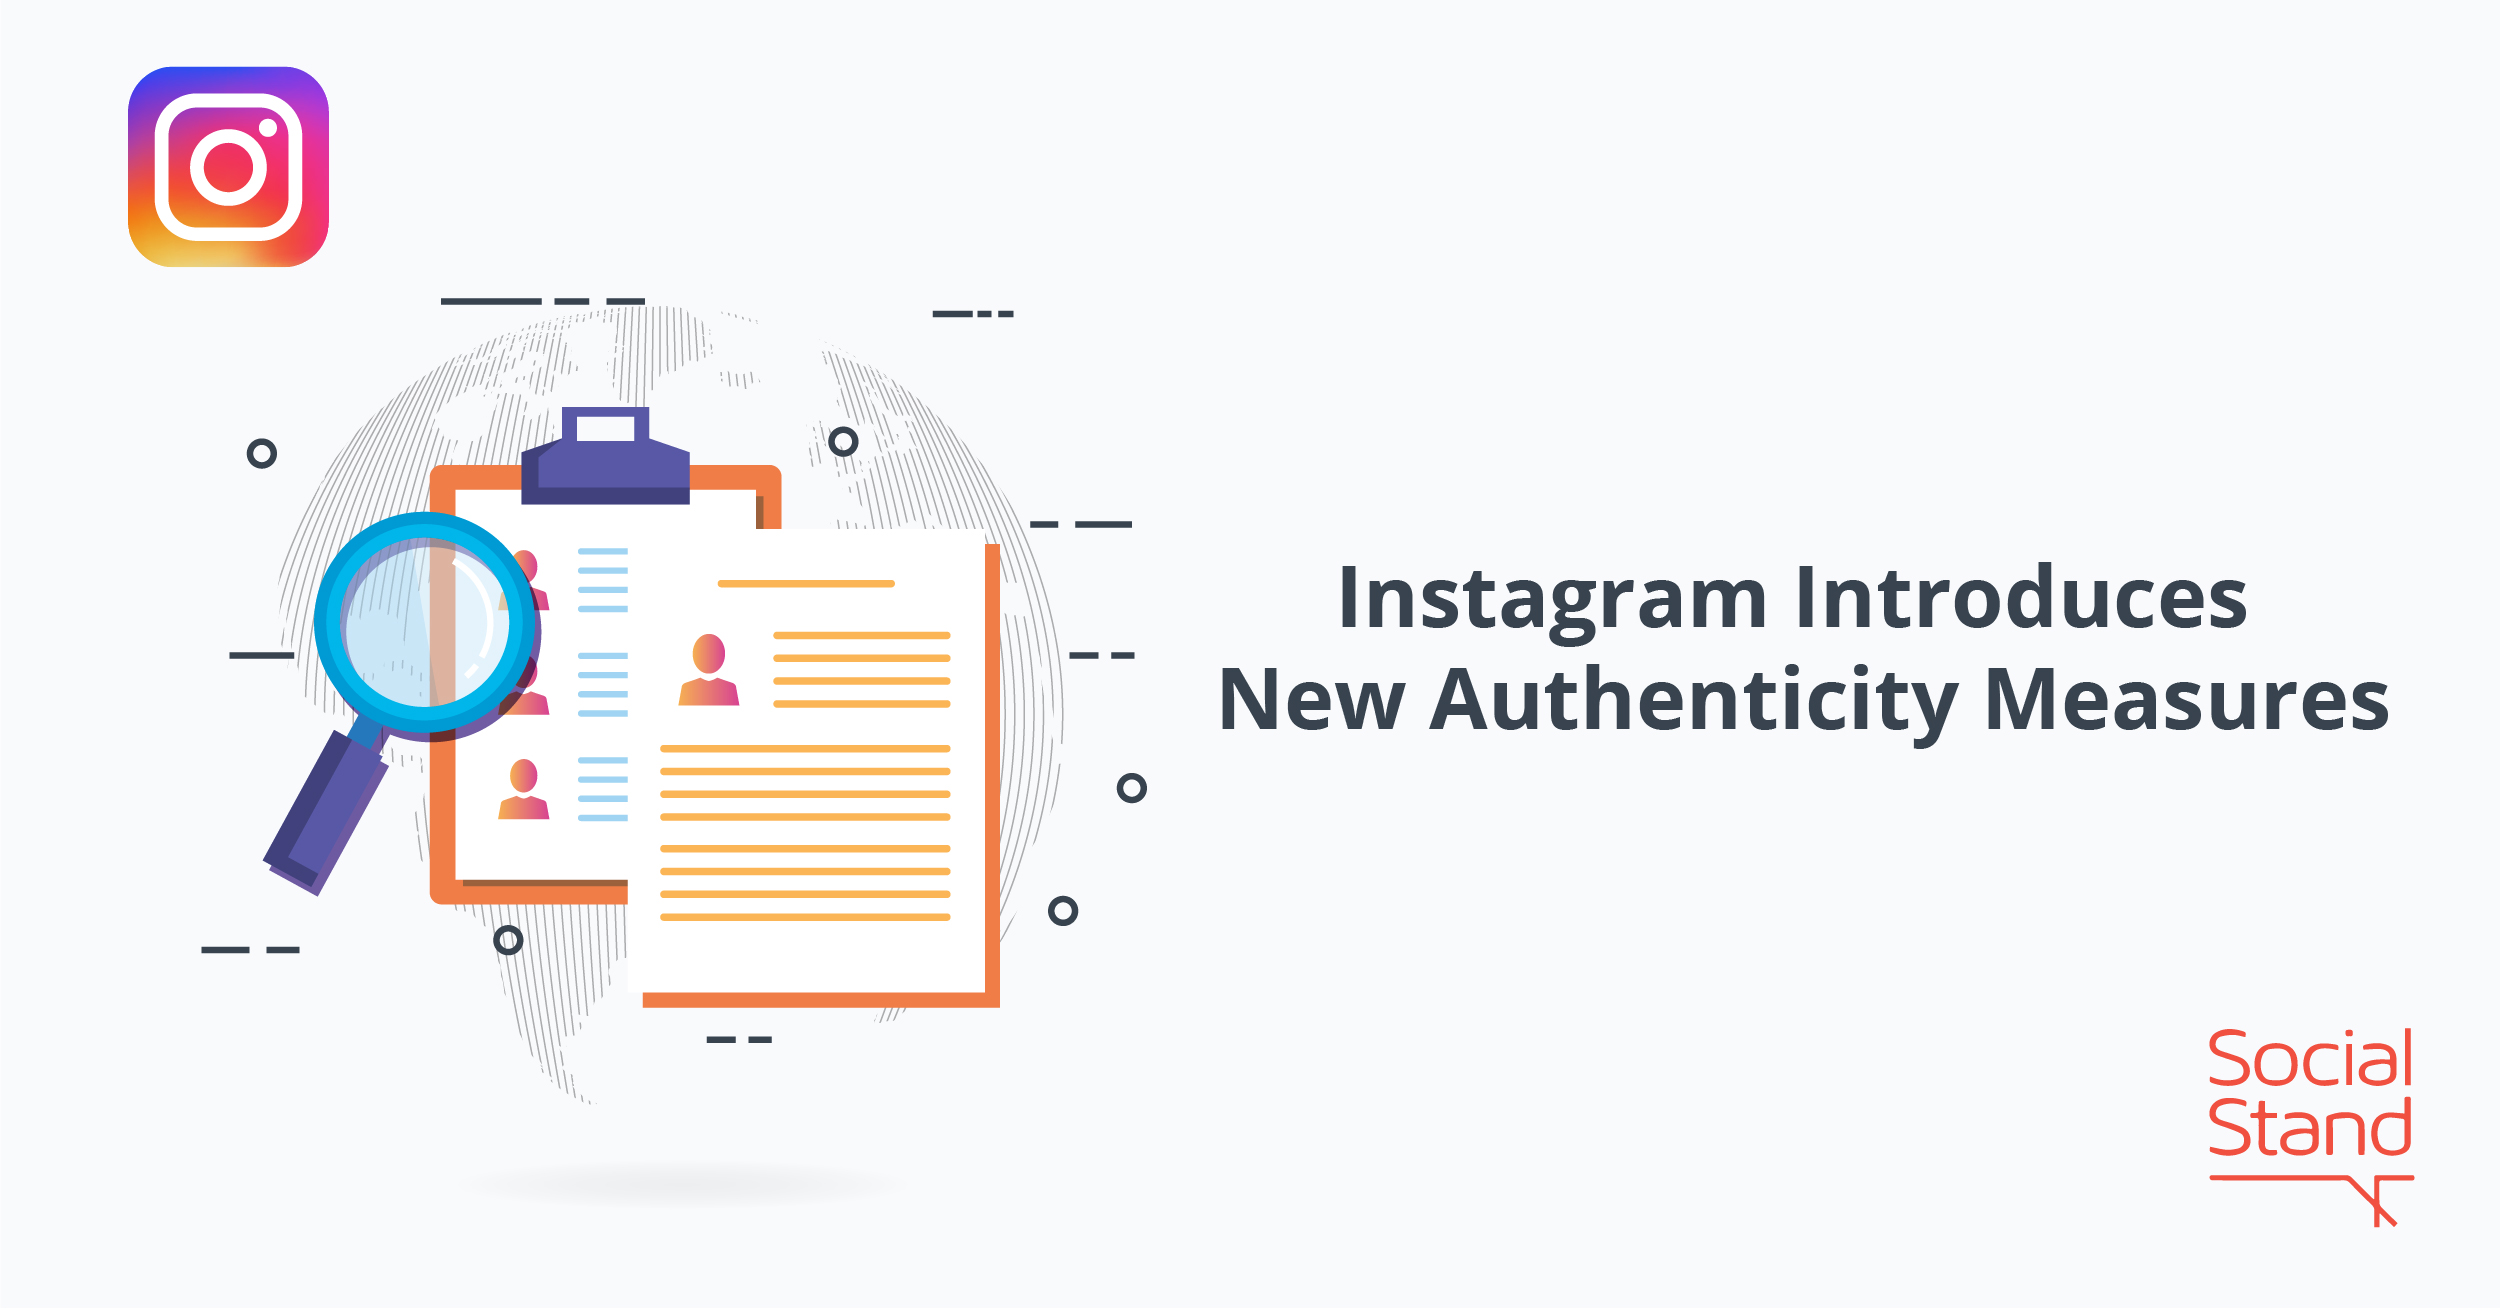 Instagram Introduces New Authenticity Measures